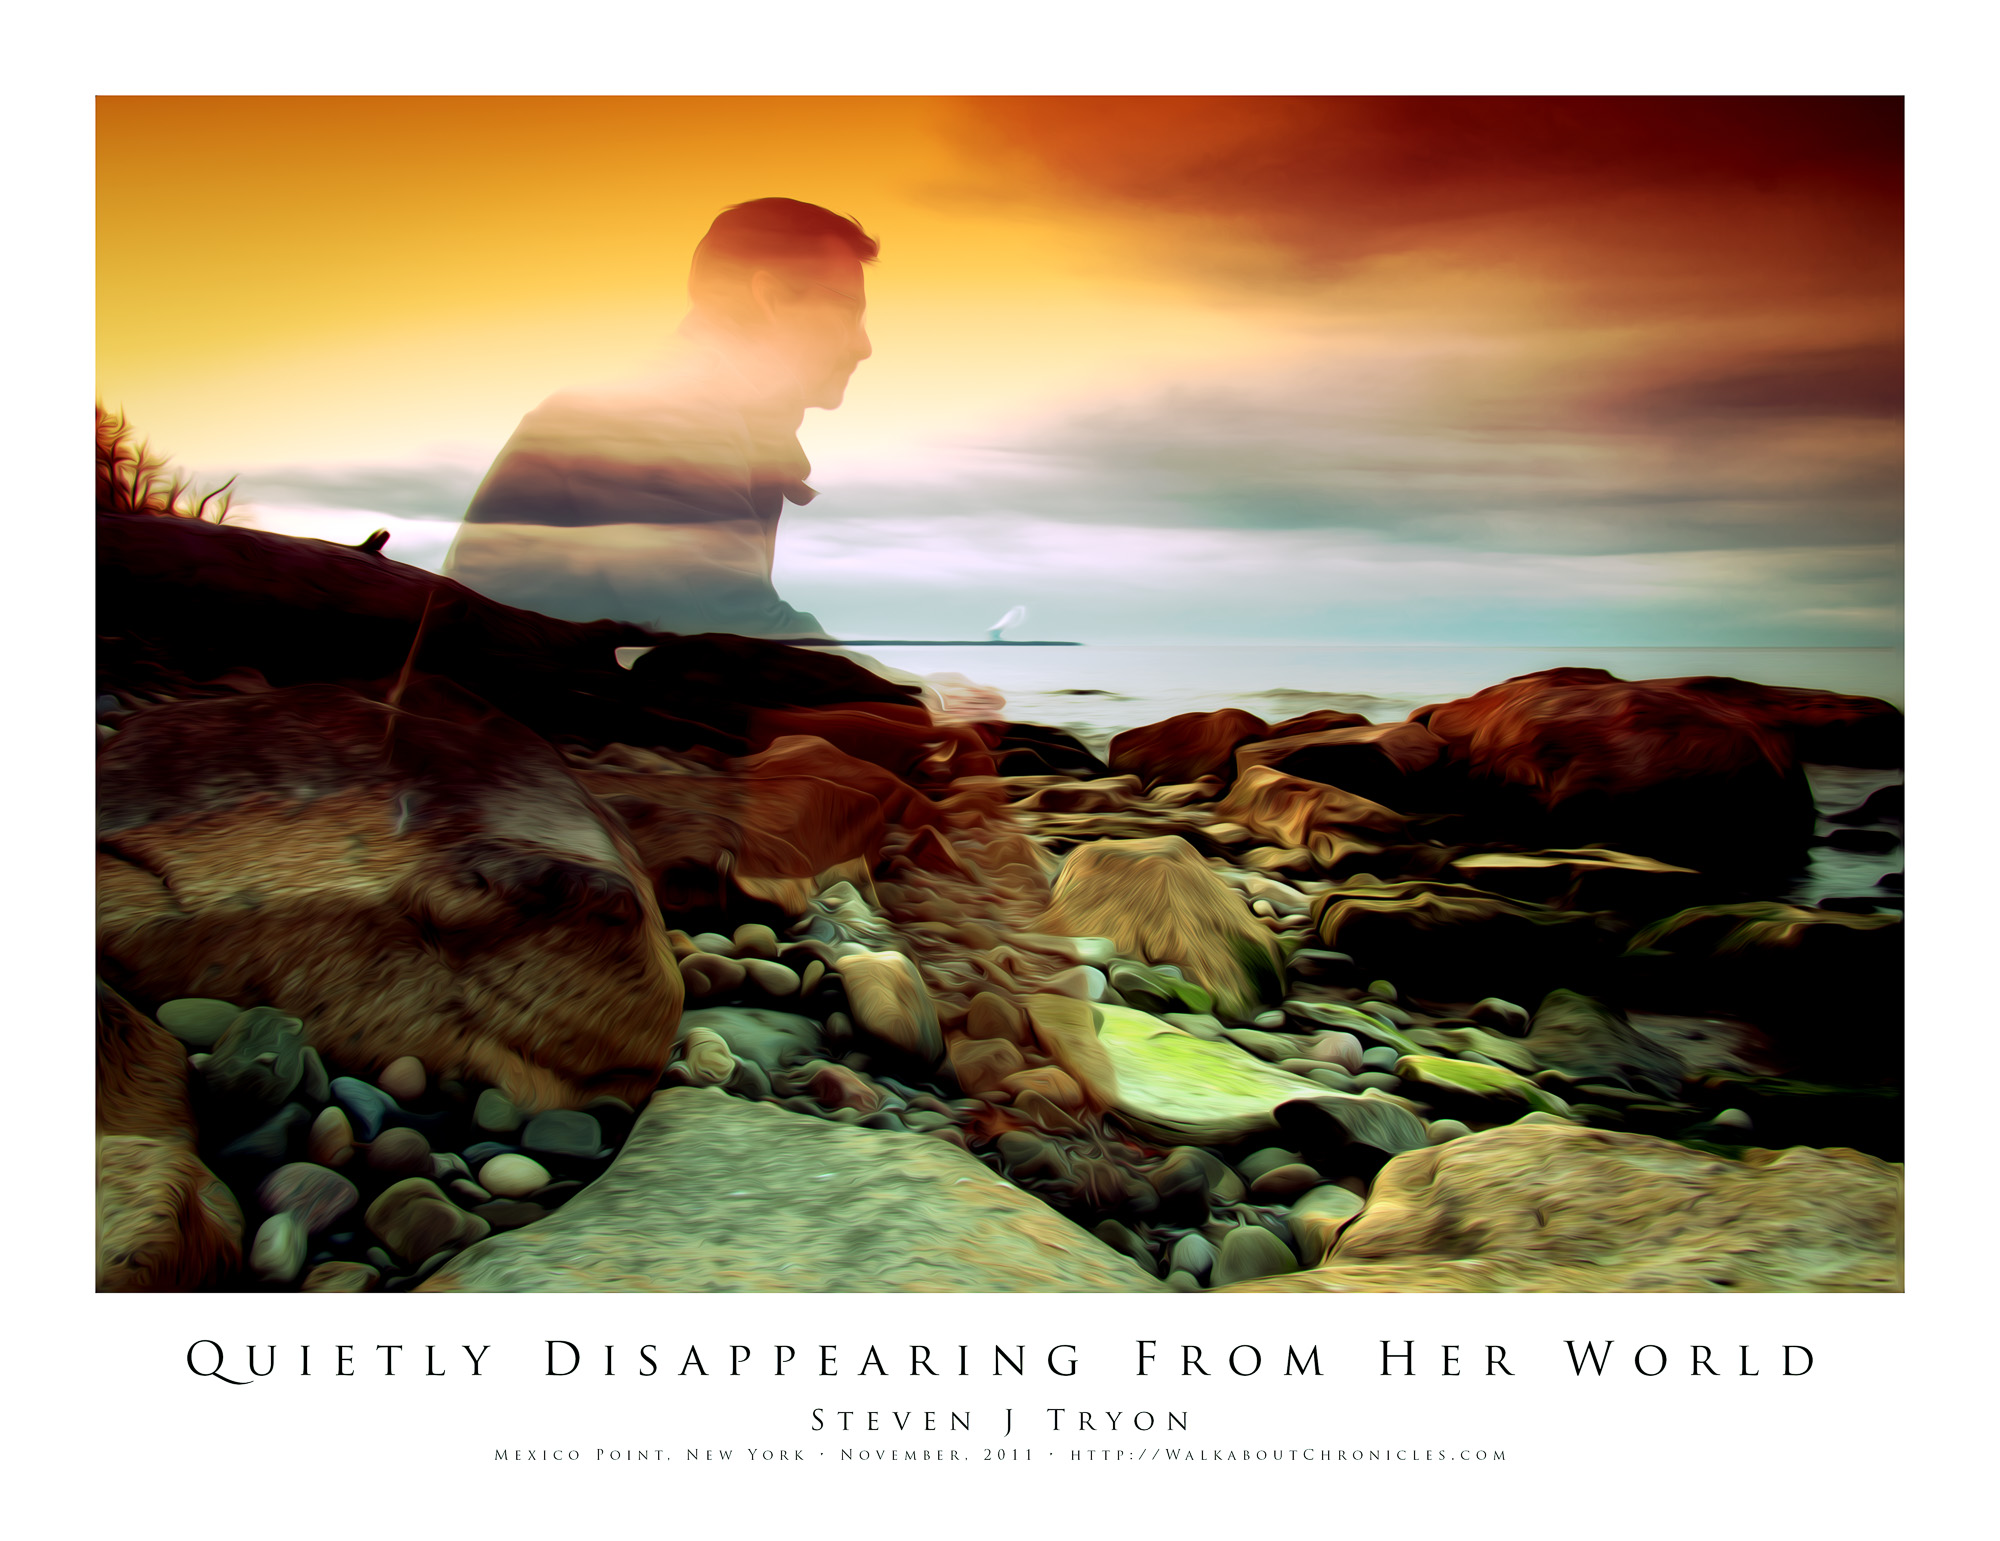 Quietly Disappearing From Her World